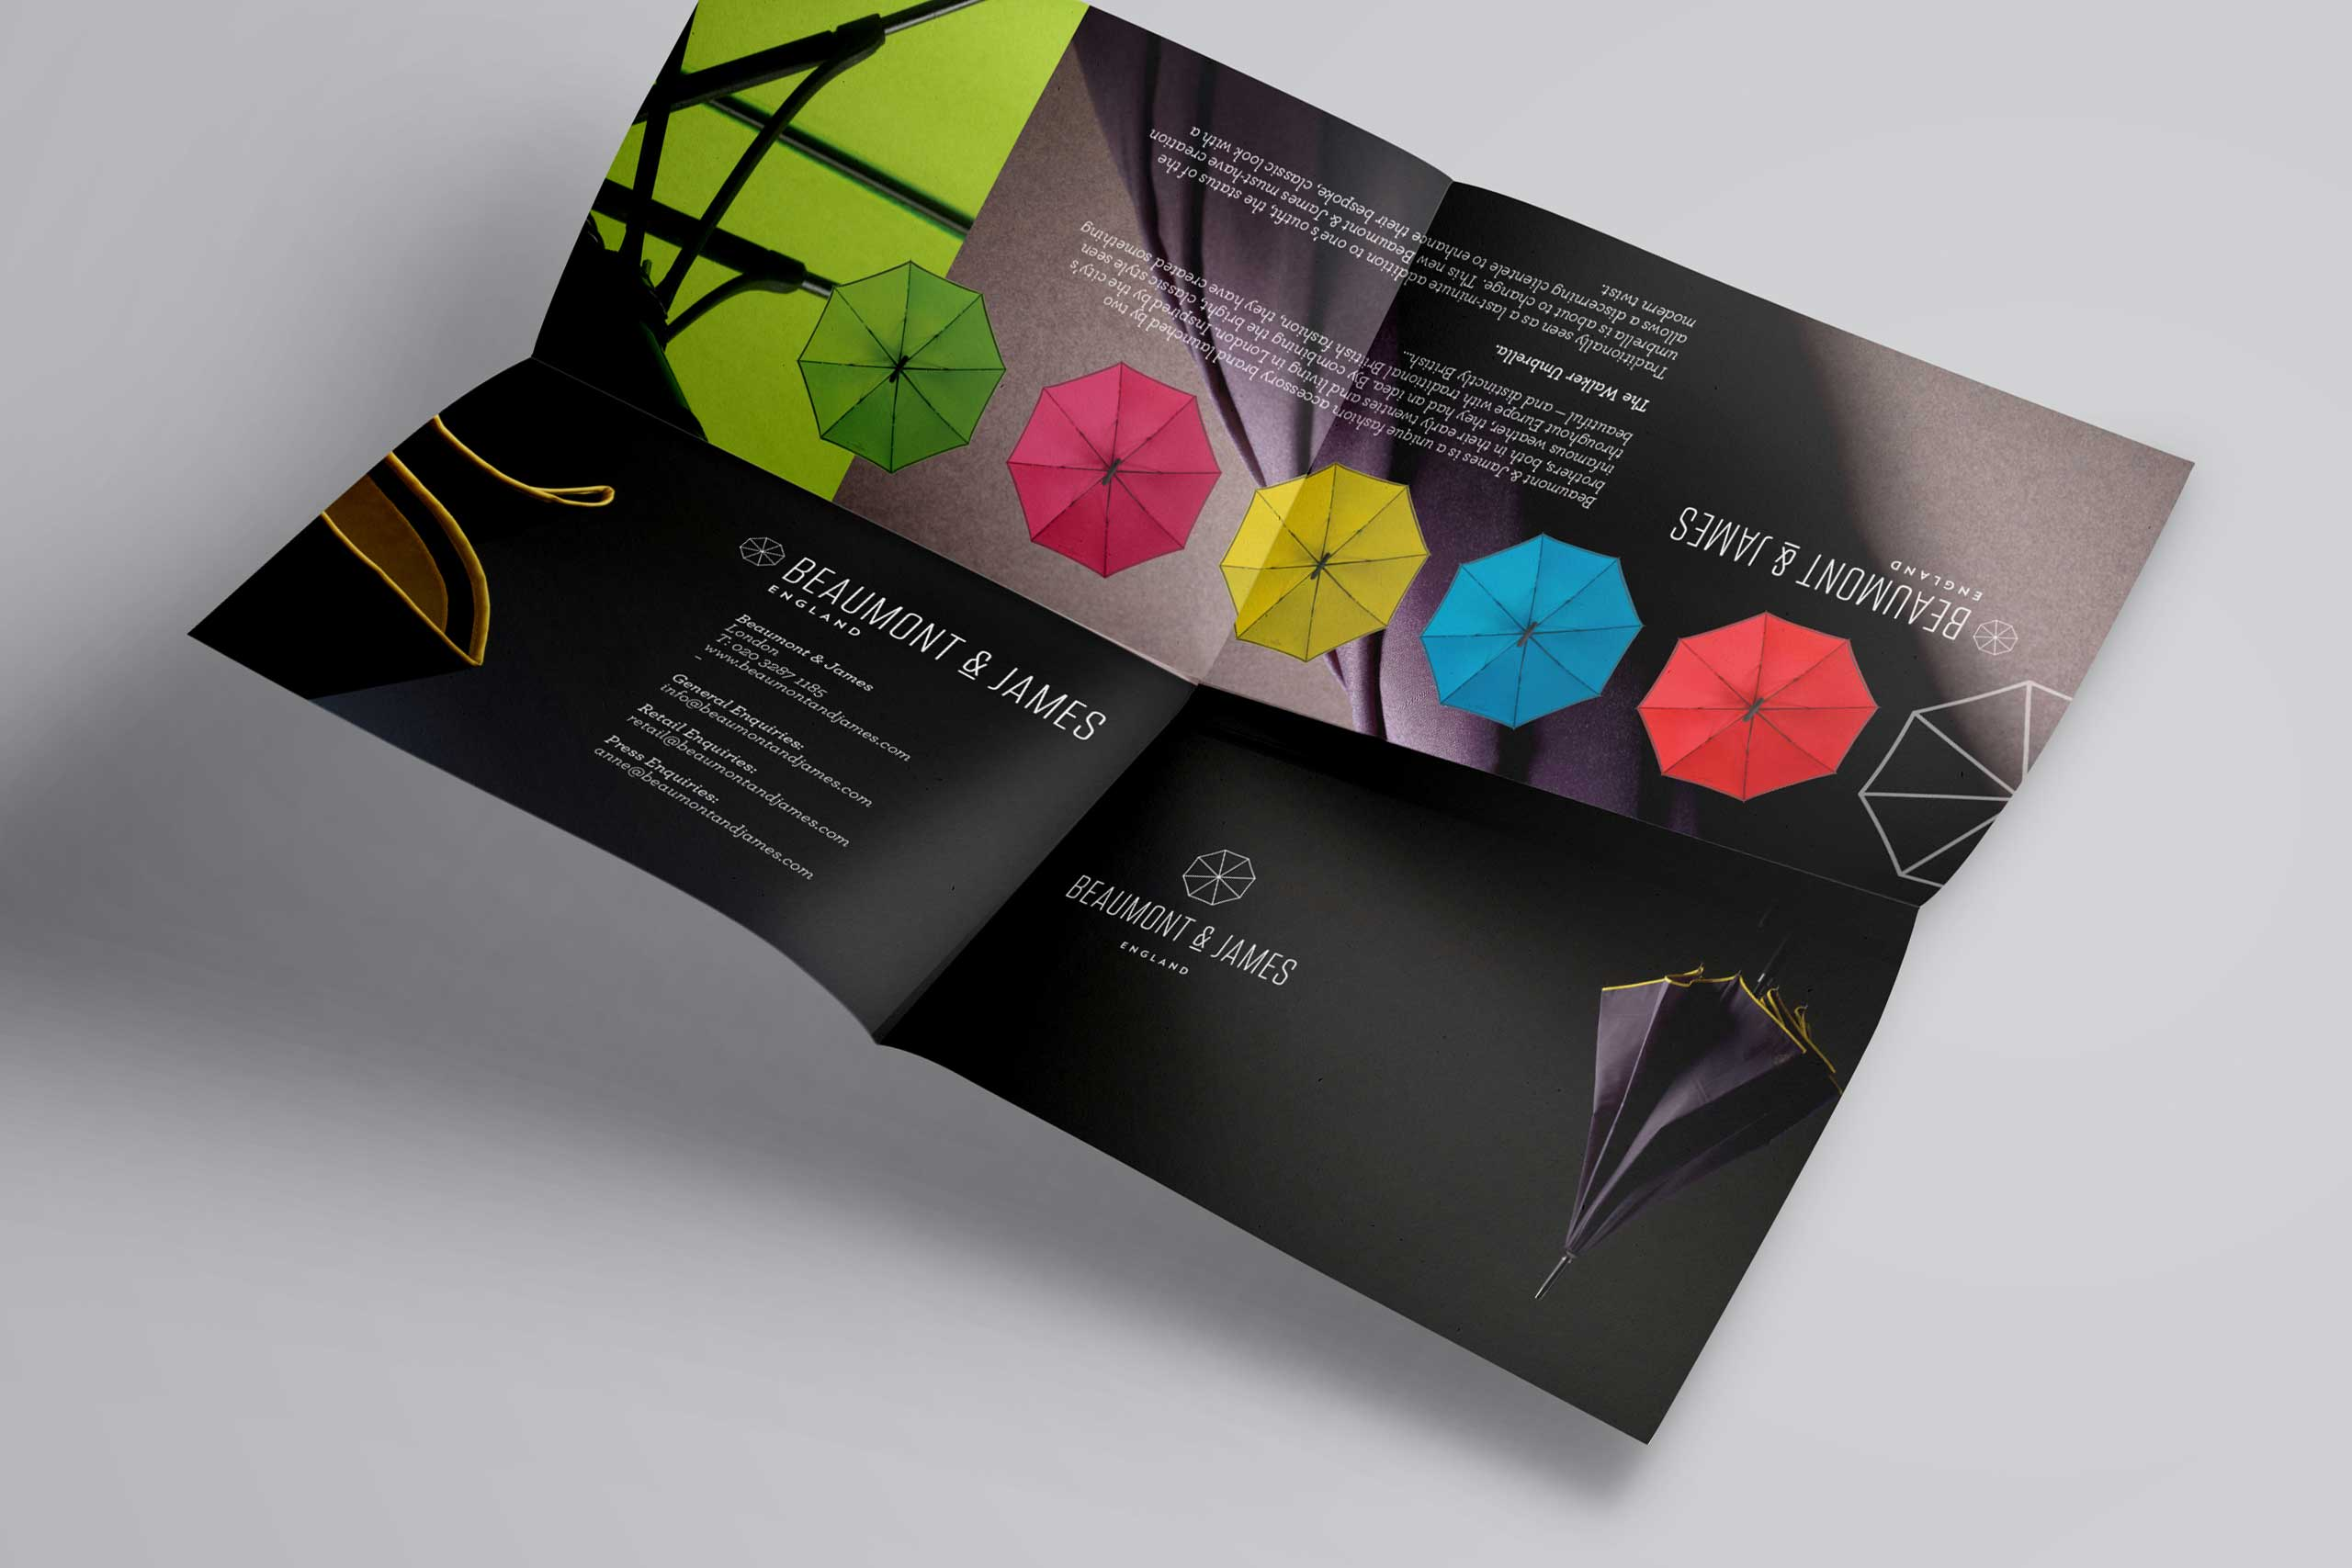 Flyer design for fashion brand